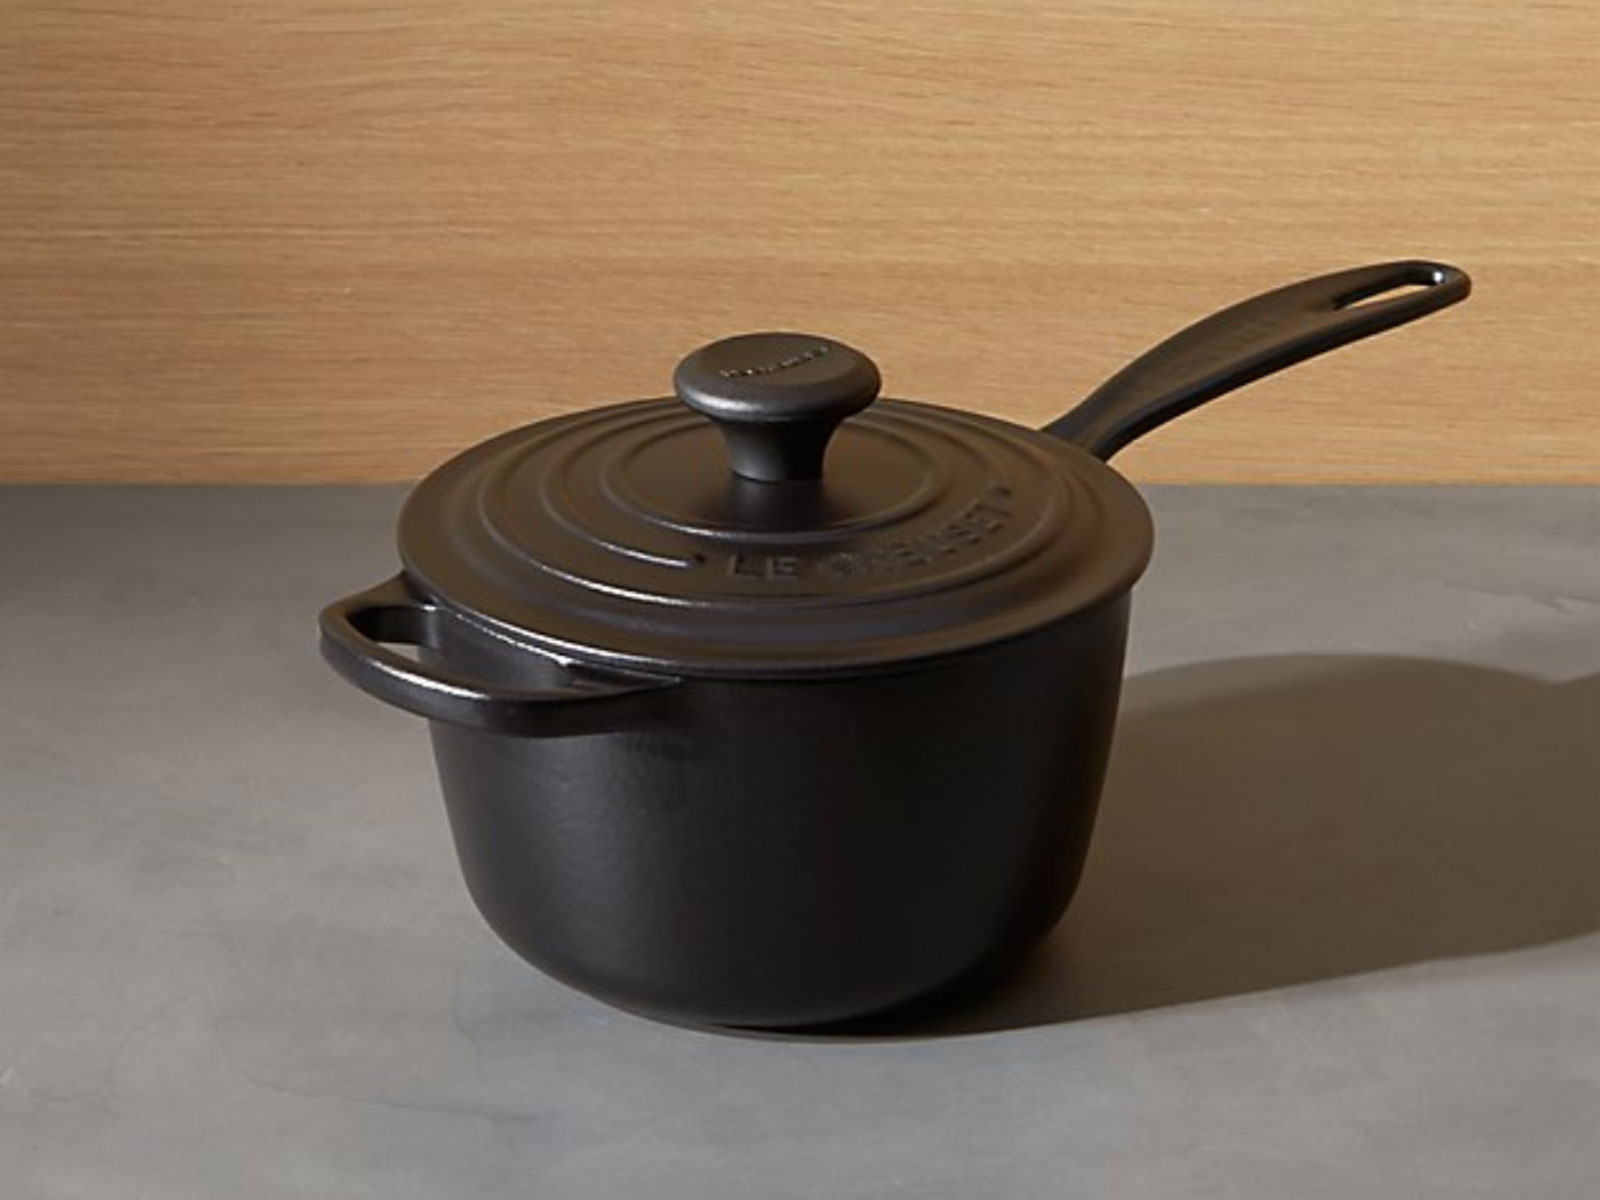 Le Creuset saucepan in licorice on sale at crate & Barrel